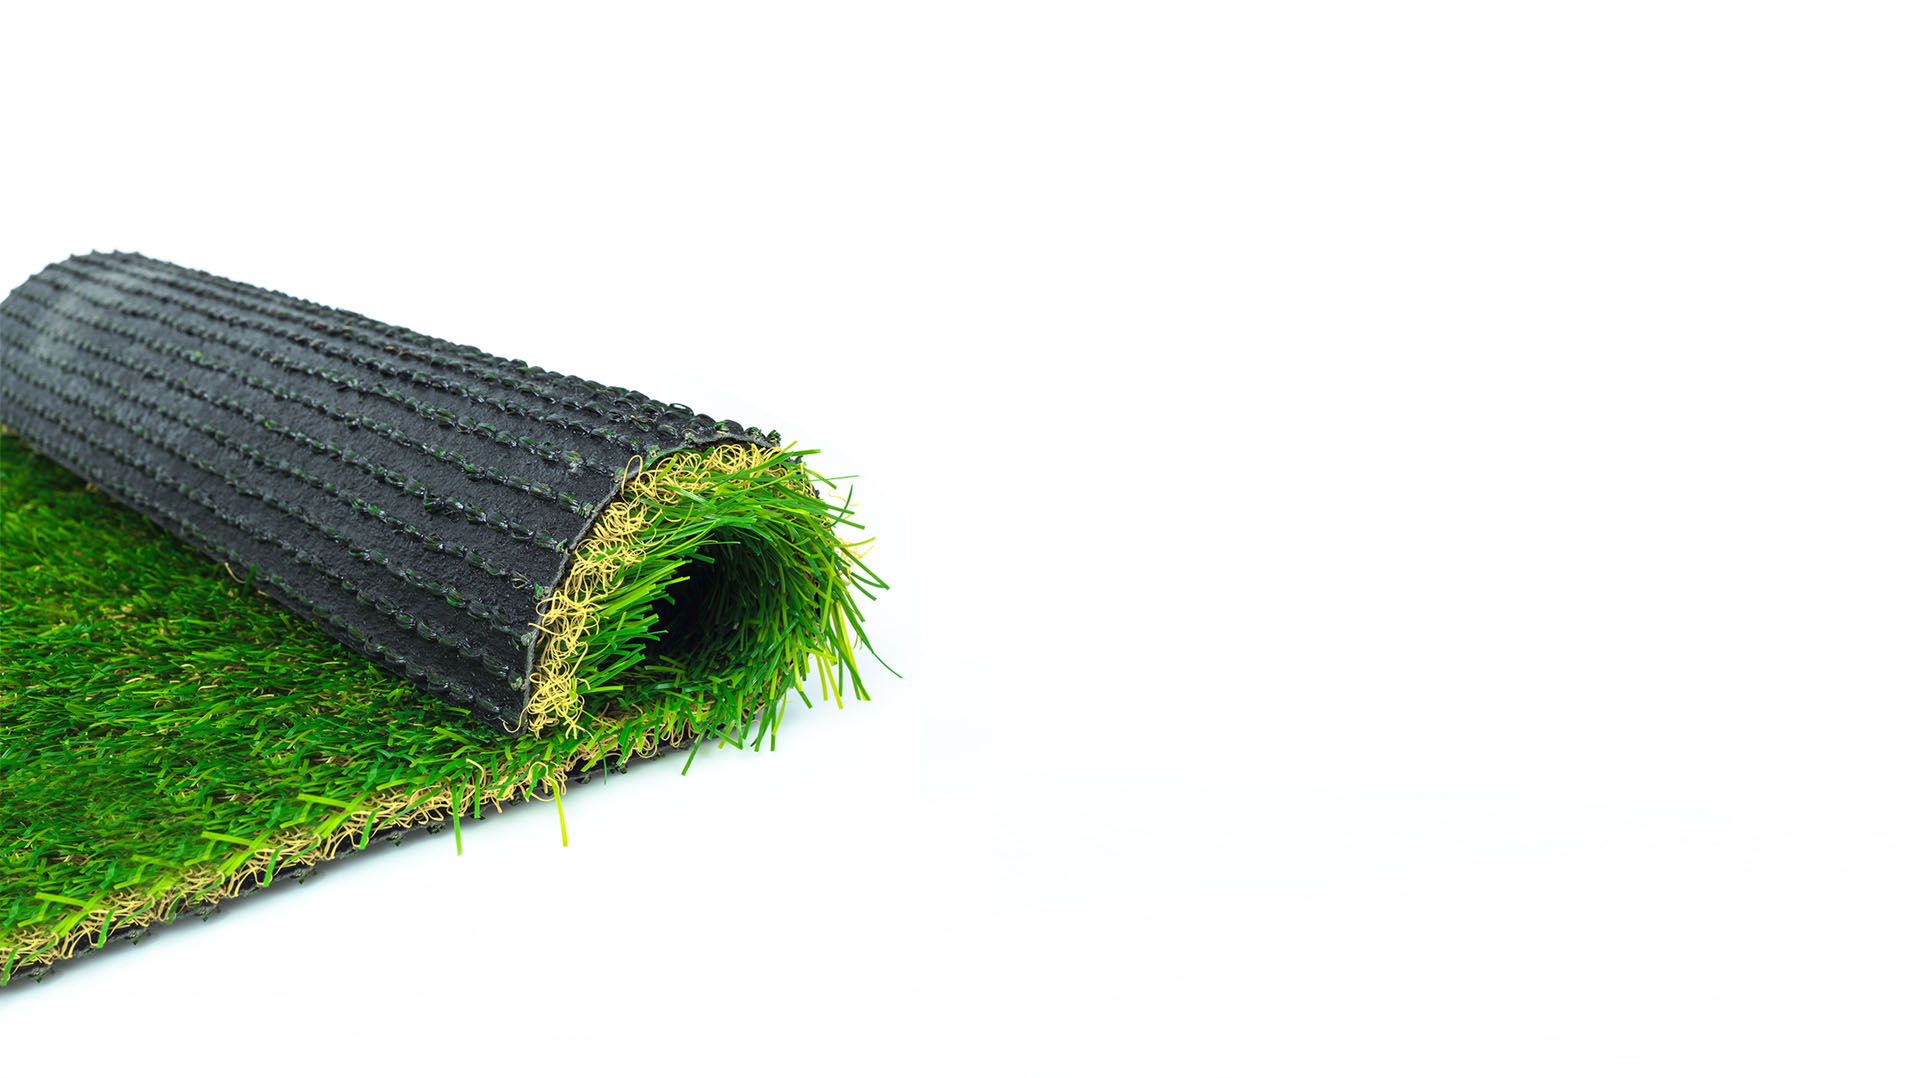 Artificial turf green grass roll on white background